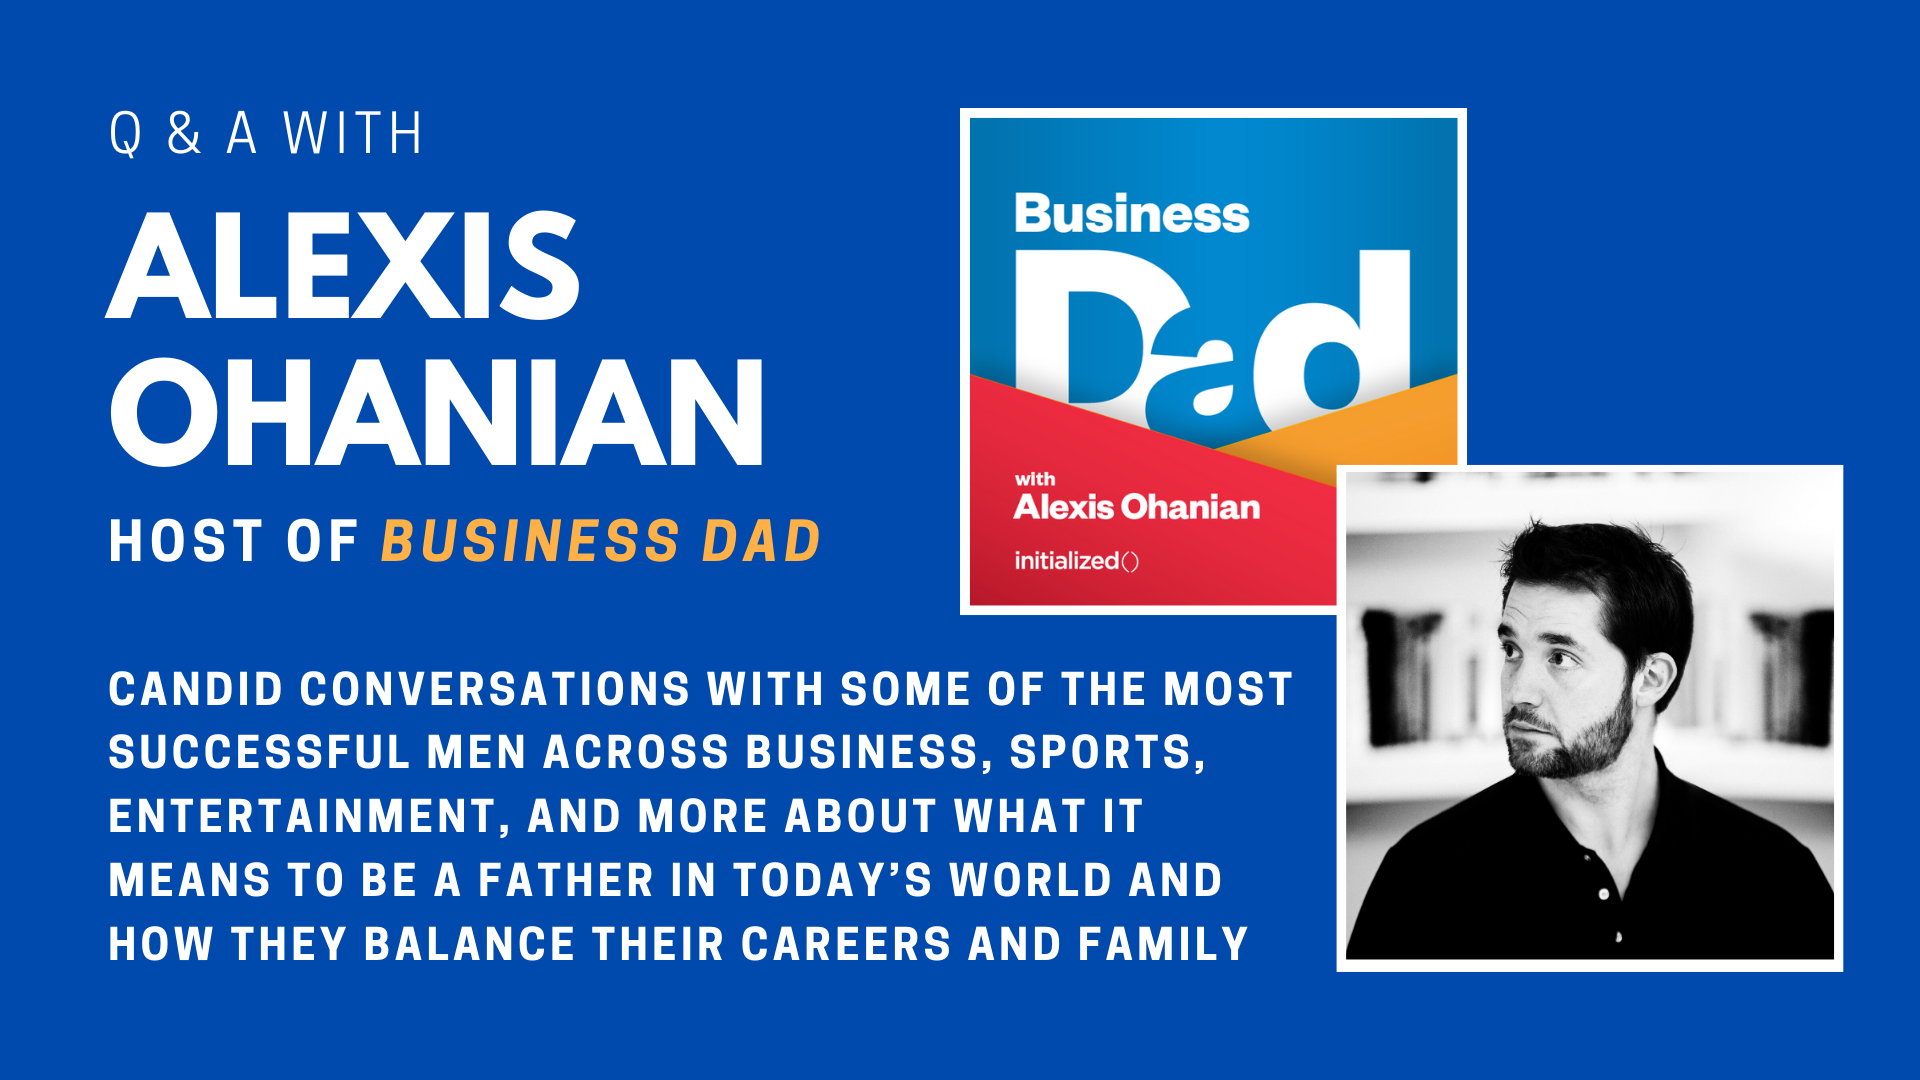 Q & A with Alexis Ohanian, co-founder of Reddit and host of <em>Business Dad</em>